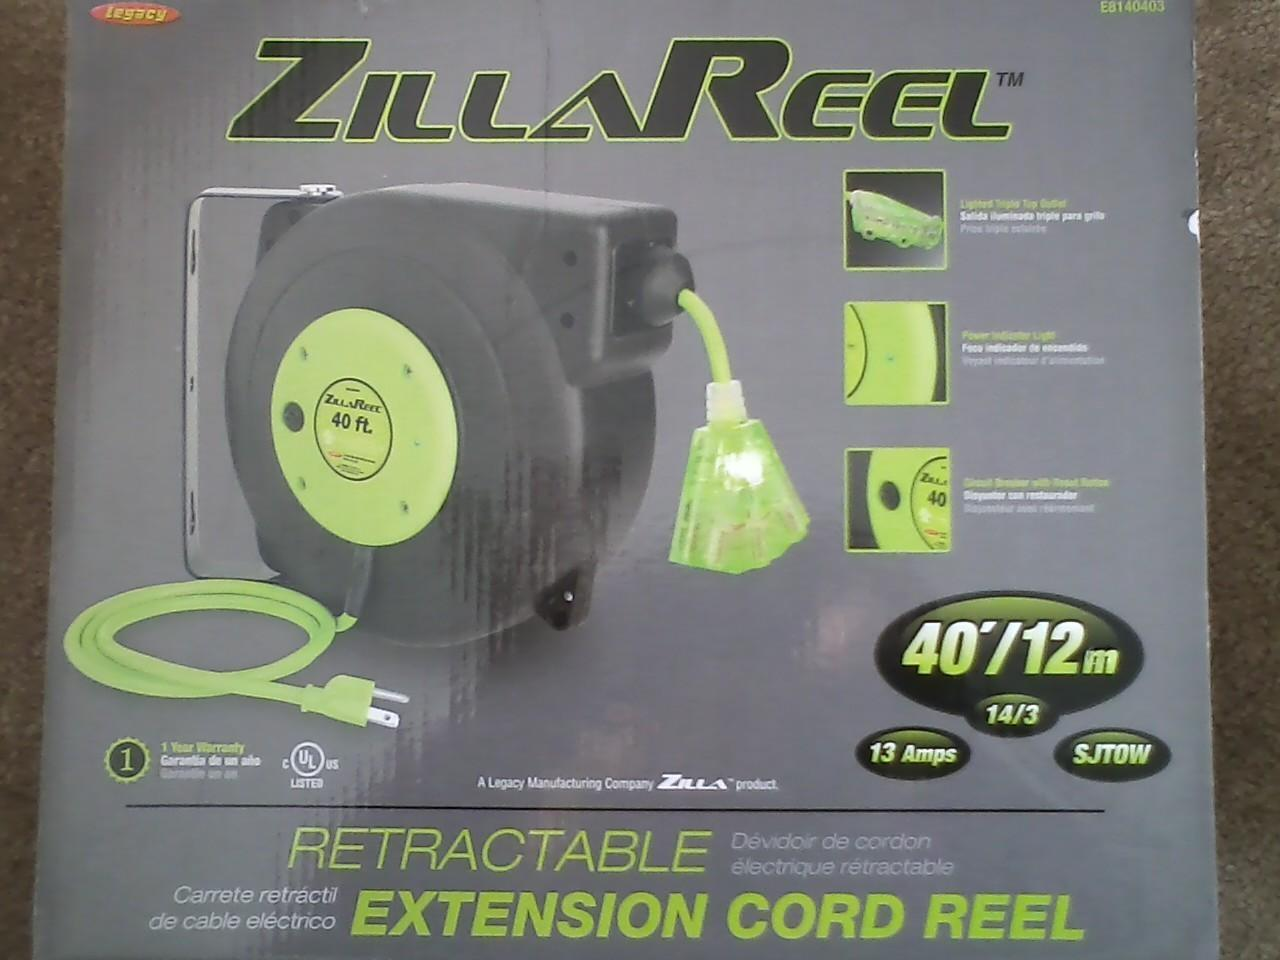 Find More Zillareel Retractable Extension Cord Reel For Sale At Up W Circuit Breaker To 90 Off